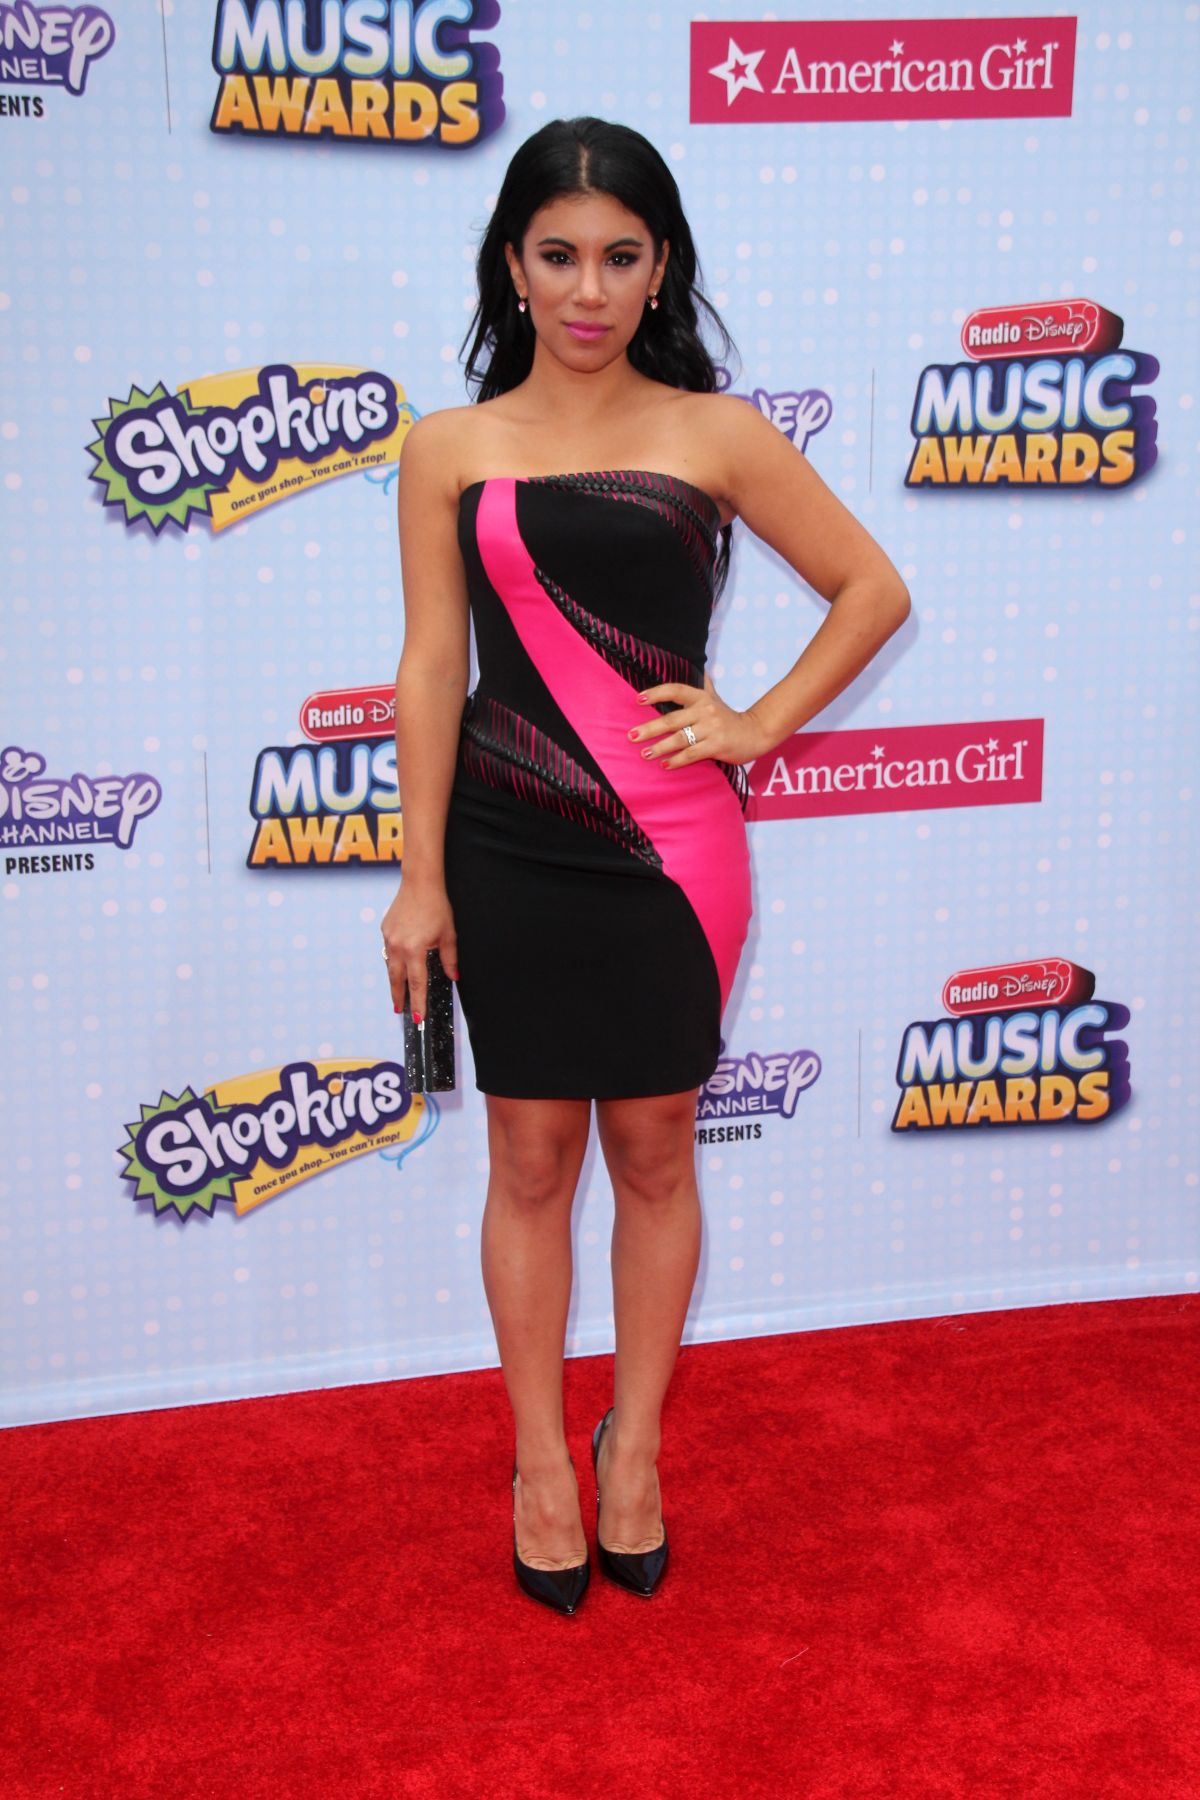 CHRISSIE FIT at 2015 Radio Disney Music Awards in Los Angeles